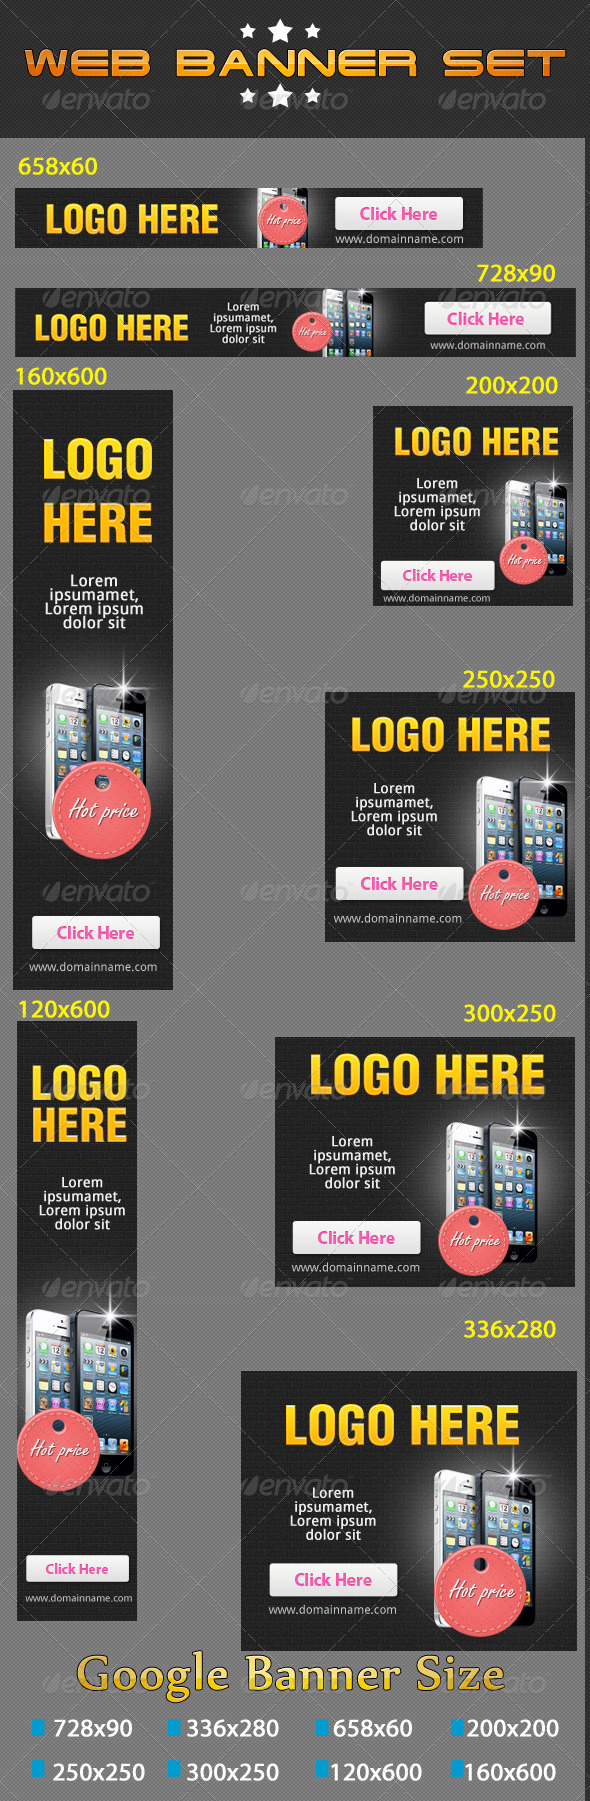 Web Banners Set VOL-02 - Banners & Ads Web Elements